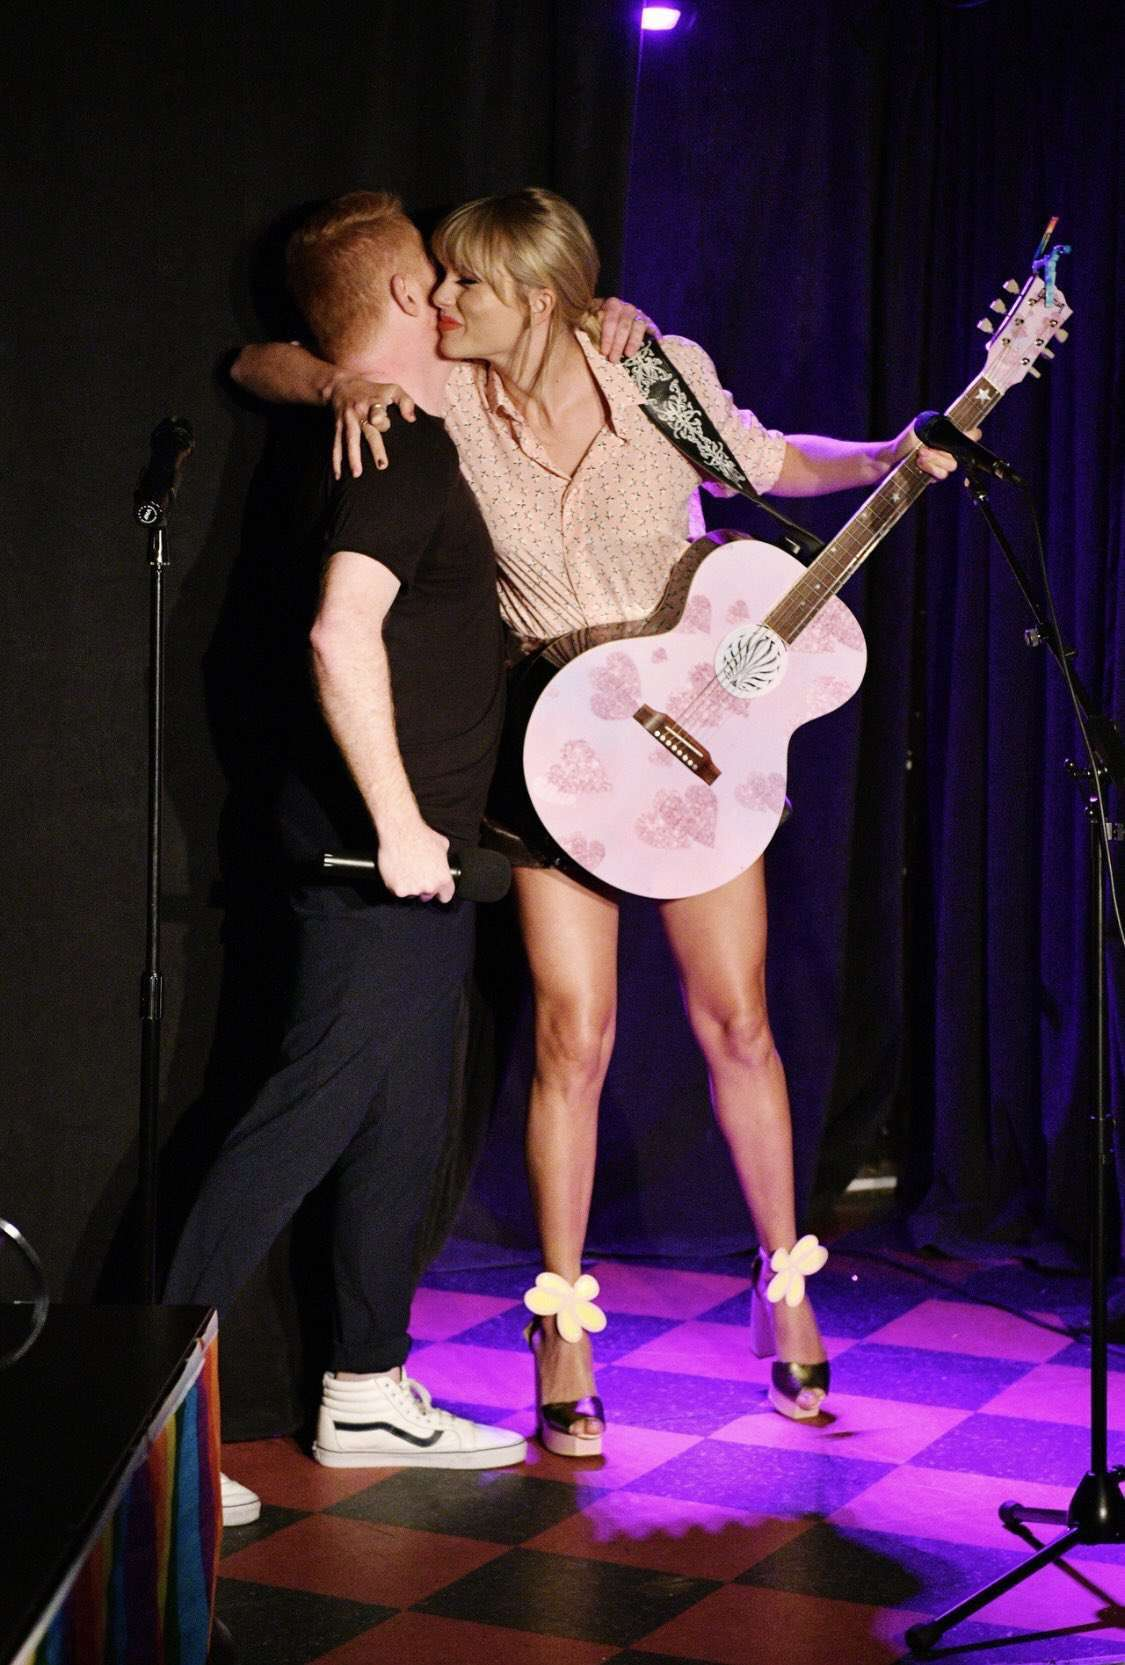 Taylor Swift at AEG and Stonewall Inn's Pride Celebration in NYC